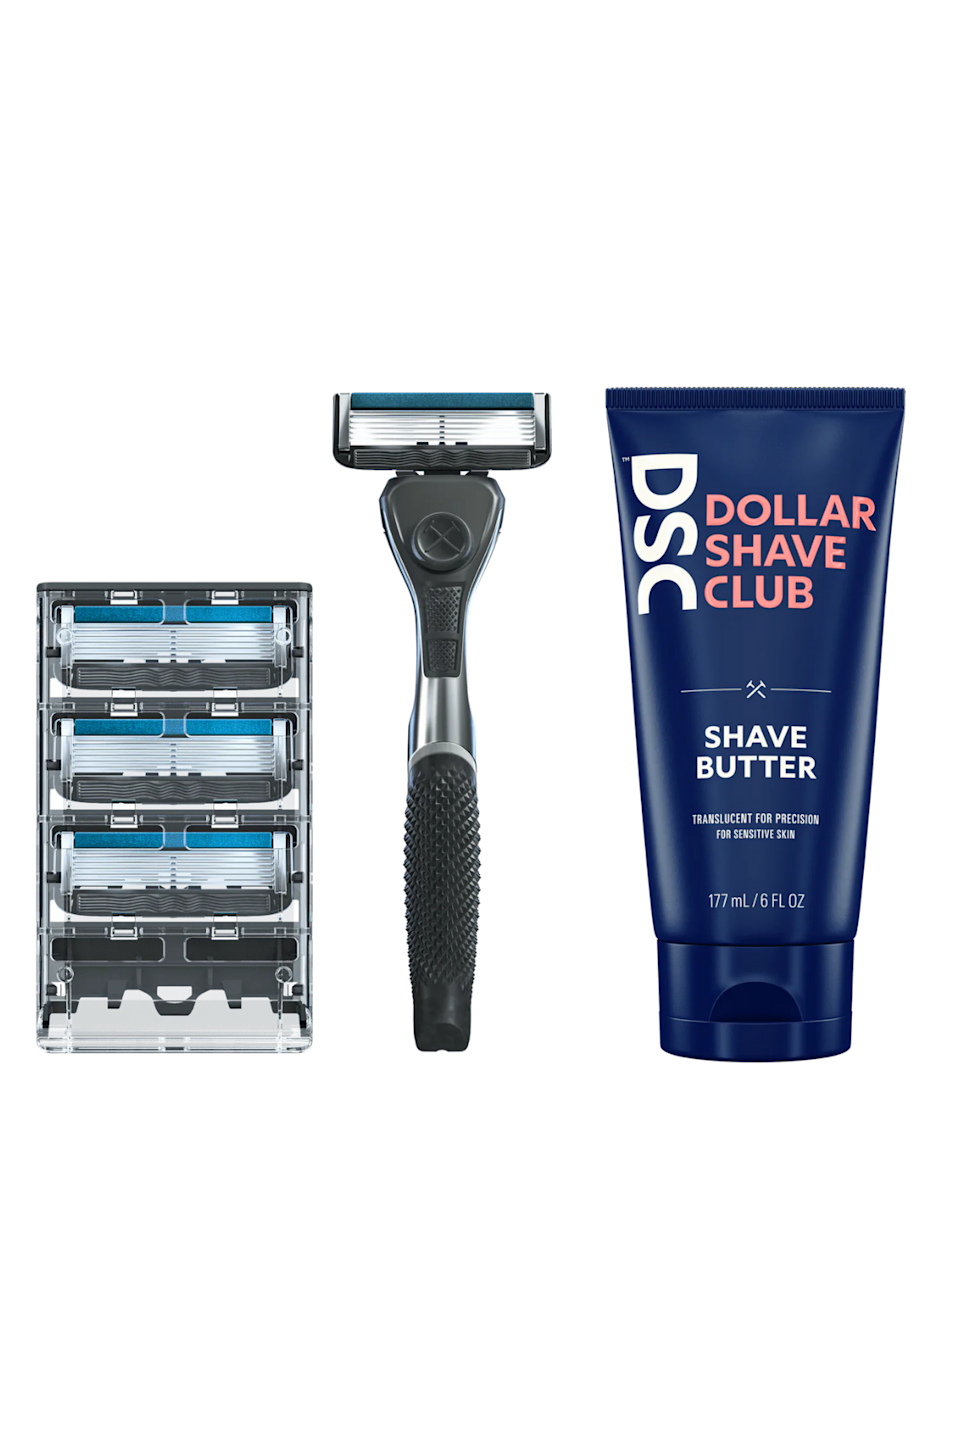 """<p><strong>Dollar Shave Club</strong></p><p>dollarshaveclub.com</p><p><strong>$20.00</strong></p><p><a href=""""https://go.redirectingat.com?id=74968X1596630&url=https%3A%2F%2Fwww.dollarshaveclub.com%2Fproduct%2Fssbutter-od&sref=https%3A%2F%2Fwww.seventeen.com%2Fbeauty%2Fmakeup-skincare%2Fg37147767%2Fbest-razors%2F"""" rel=""""nofollow noopener"""" target=""""_blank"""" data-ylk=""""slk:Shop Now"""" class=""""link rapid-noclick-resp"""">Shop Now</a></p><p>If you recognize Dollar Shave Club, you may have heard about it from some of your fave influencers. DSC is one of the leading shaving subscription services on the market. After taking a quiz, the brand customizes a box of products catered to your needs and ships them to your door every time you need them.</p>"""